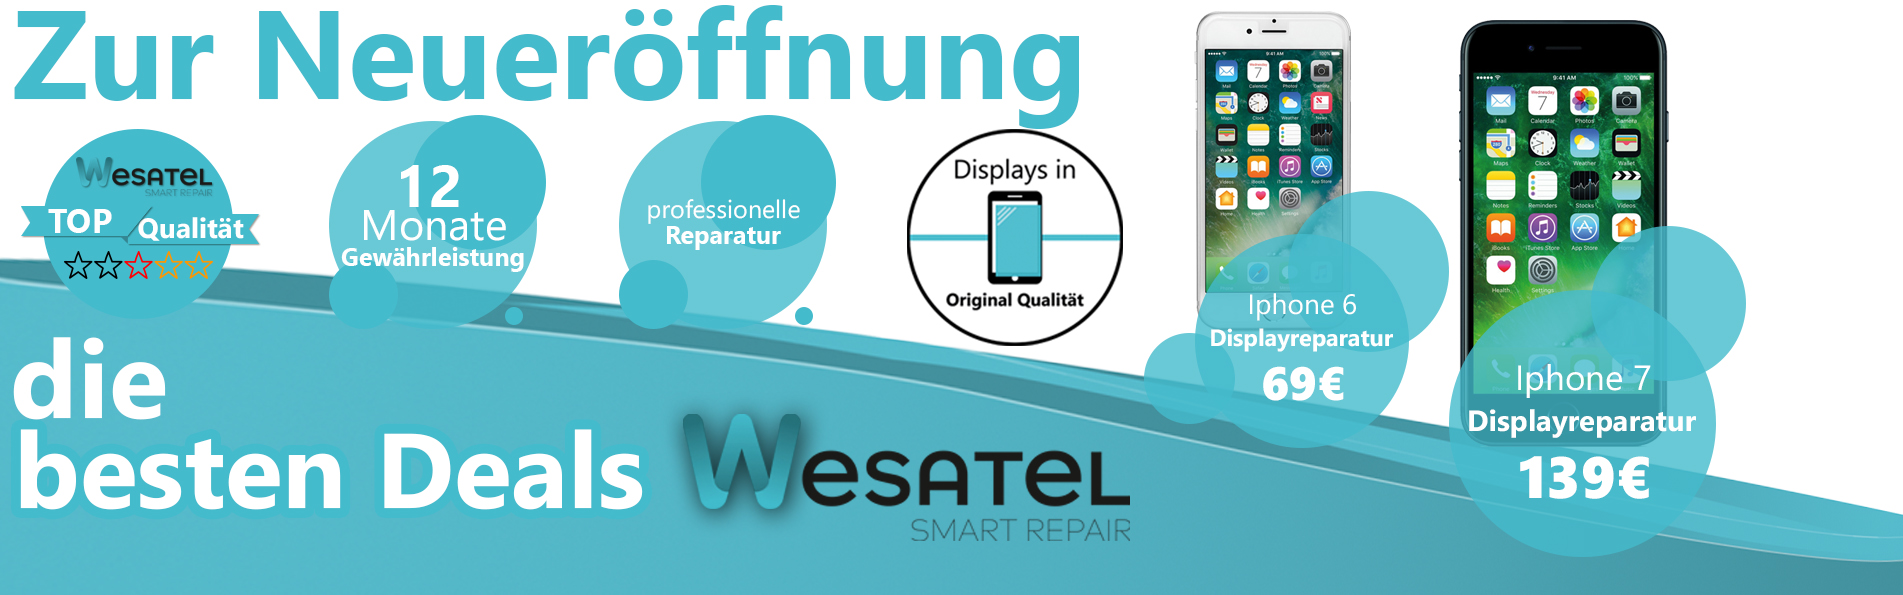 neuer ffnungsangebote wesatel handy reparatur hamburg wesatel. Black Bedroom Furniture Sets. Home Design Ideas